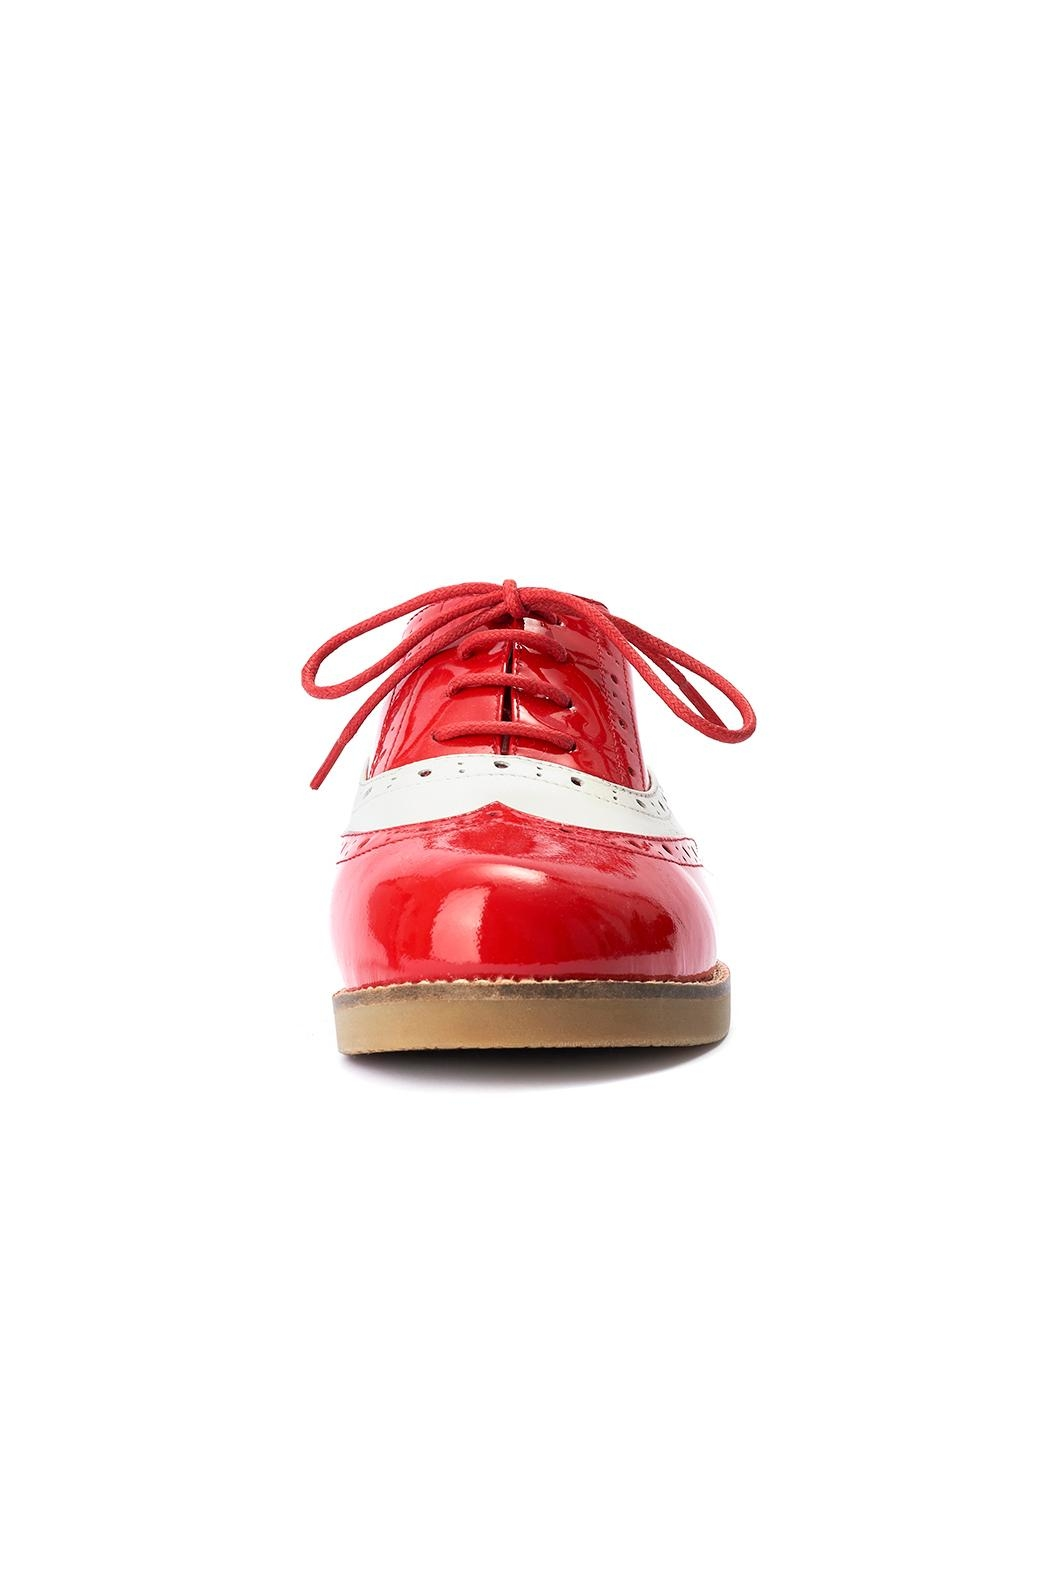 Lola Ramona Cecilia Wingtip Red Shoes - Side Cropped Image